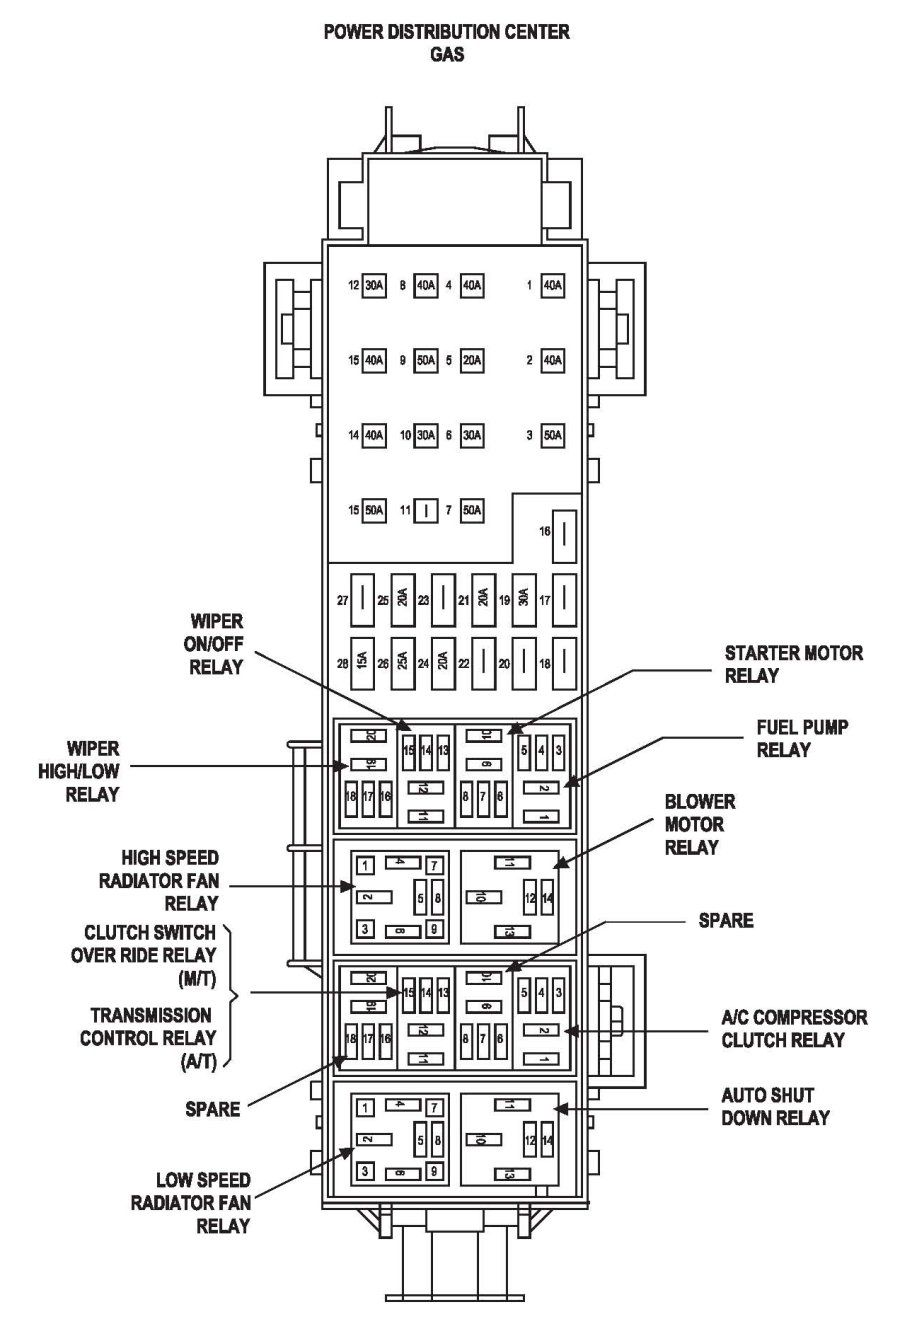 b3536c3739783eb19f827744cc42c3c4 jeep liberty fuse box diagram image details jeep liberty 2006 jeep fuse box diagram at soozxer.org